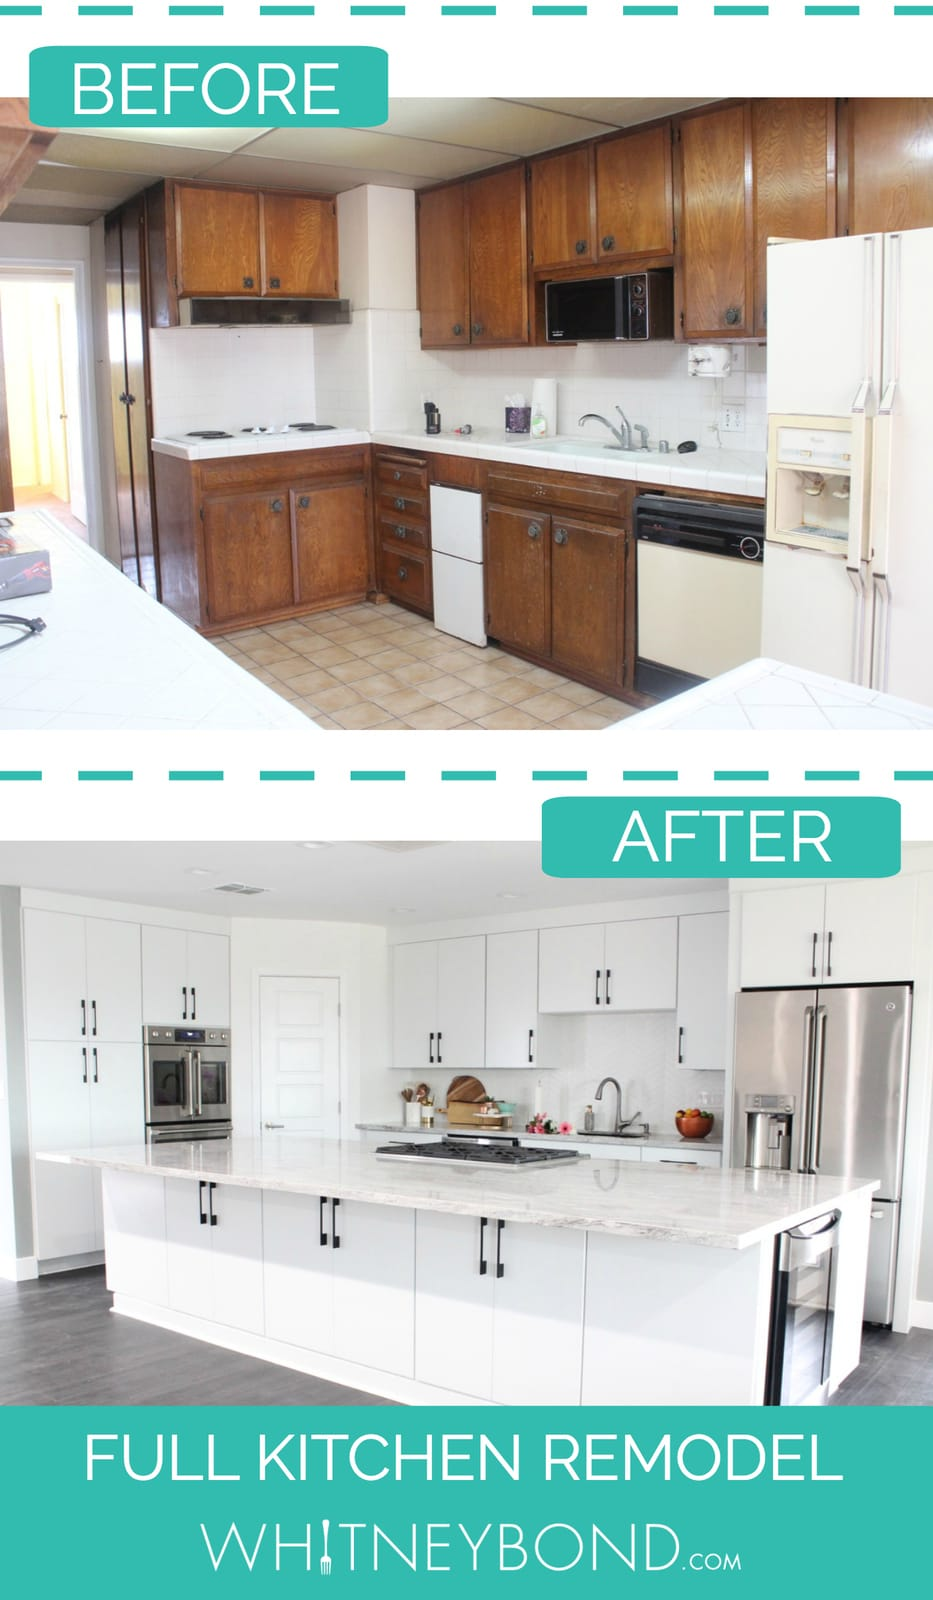 Before and After Kitchen Remodel Images with Text